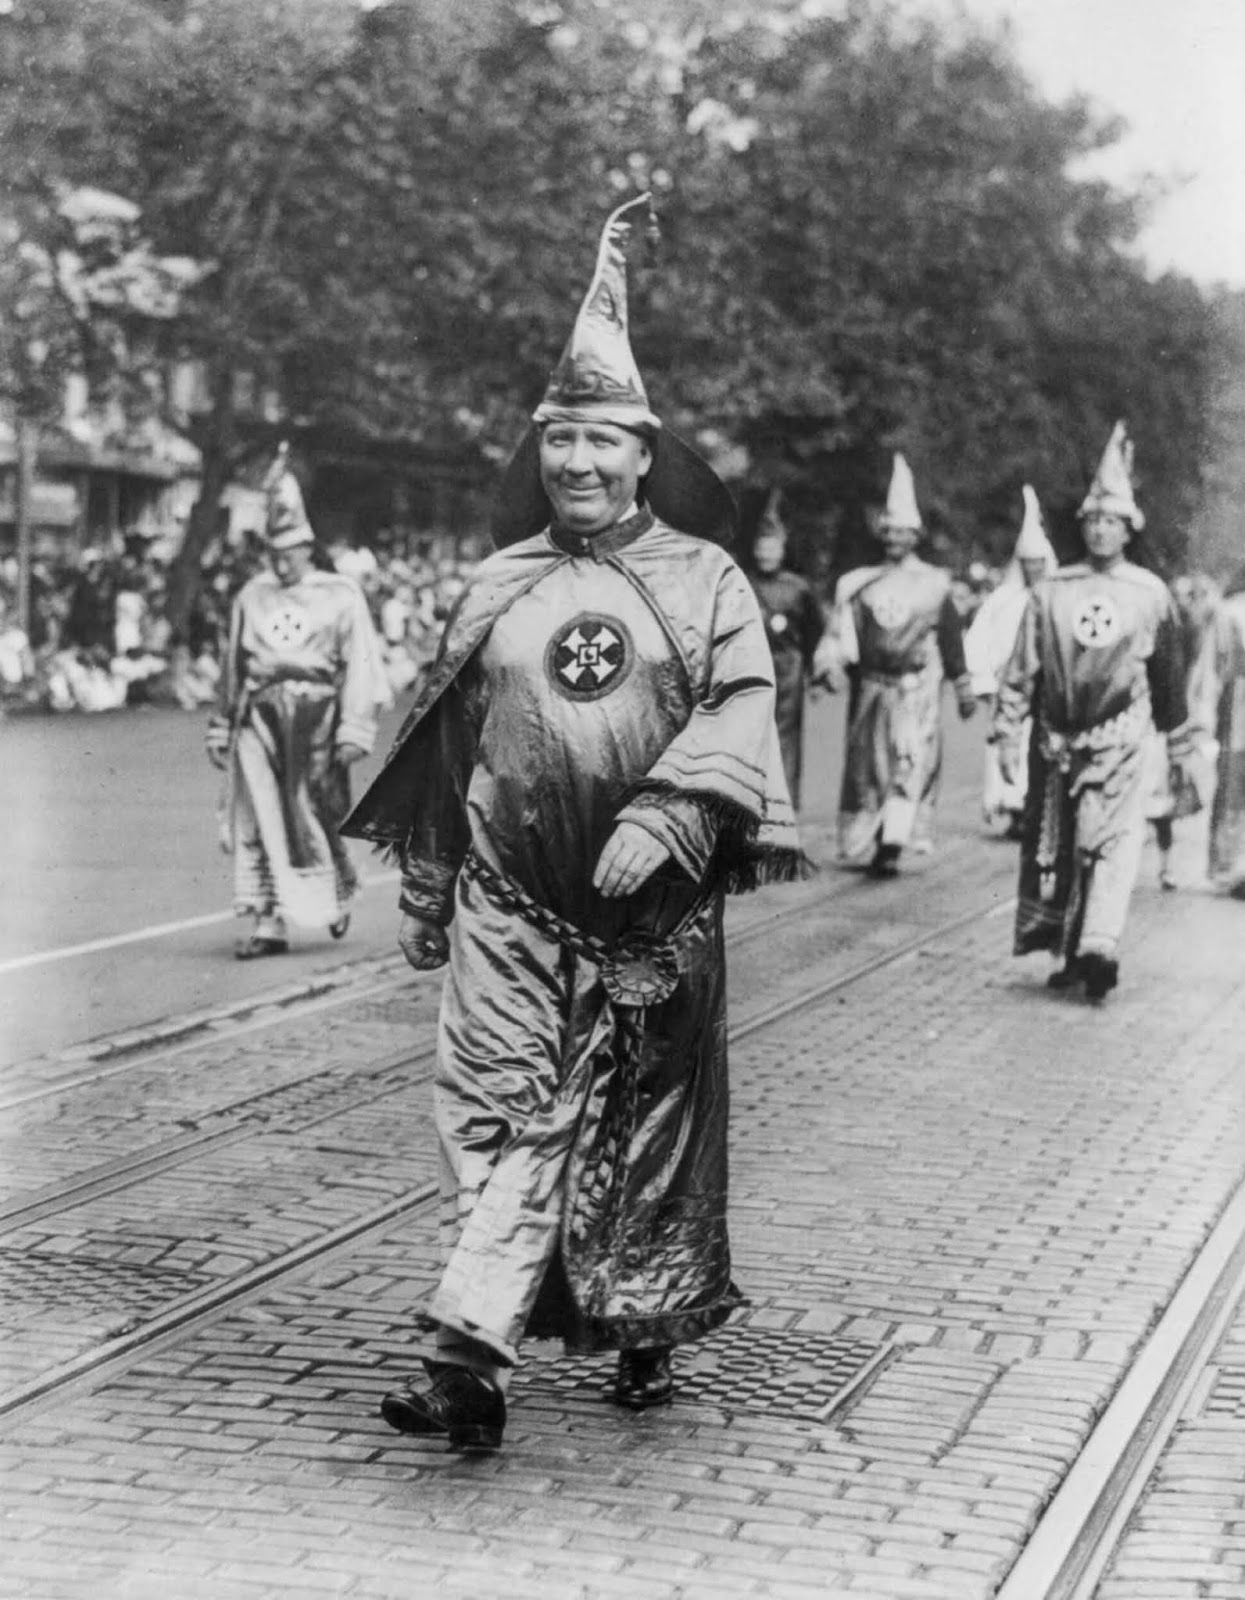 Dr. H.W. Evans, Imperial Wizard of the Ku Klux Klan, walks in the parade.